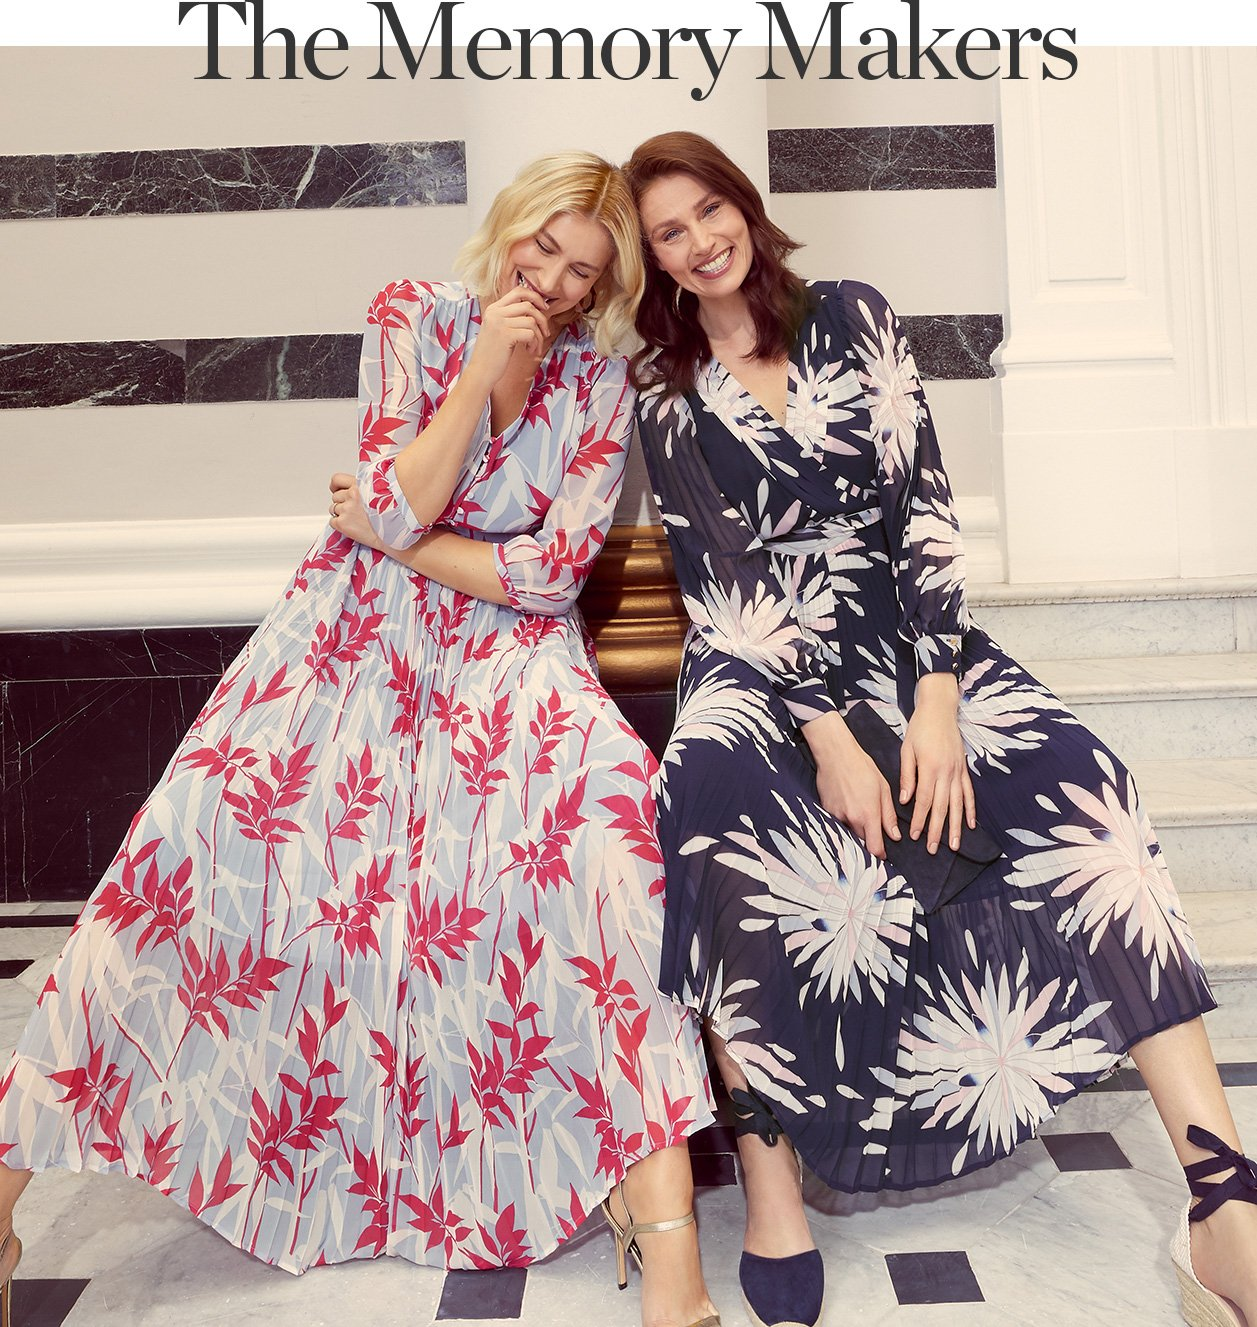 The Memory Makers